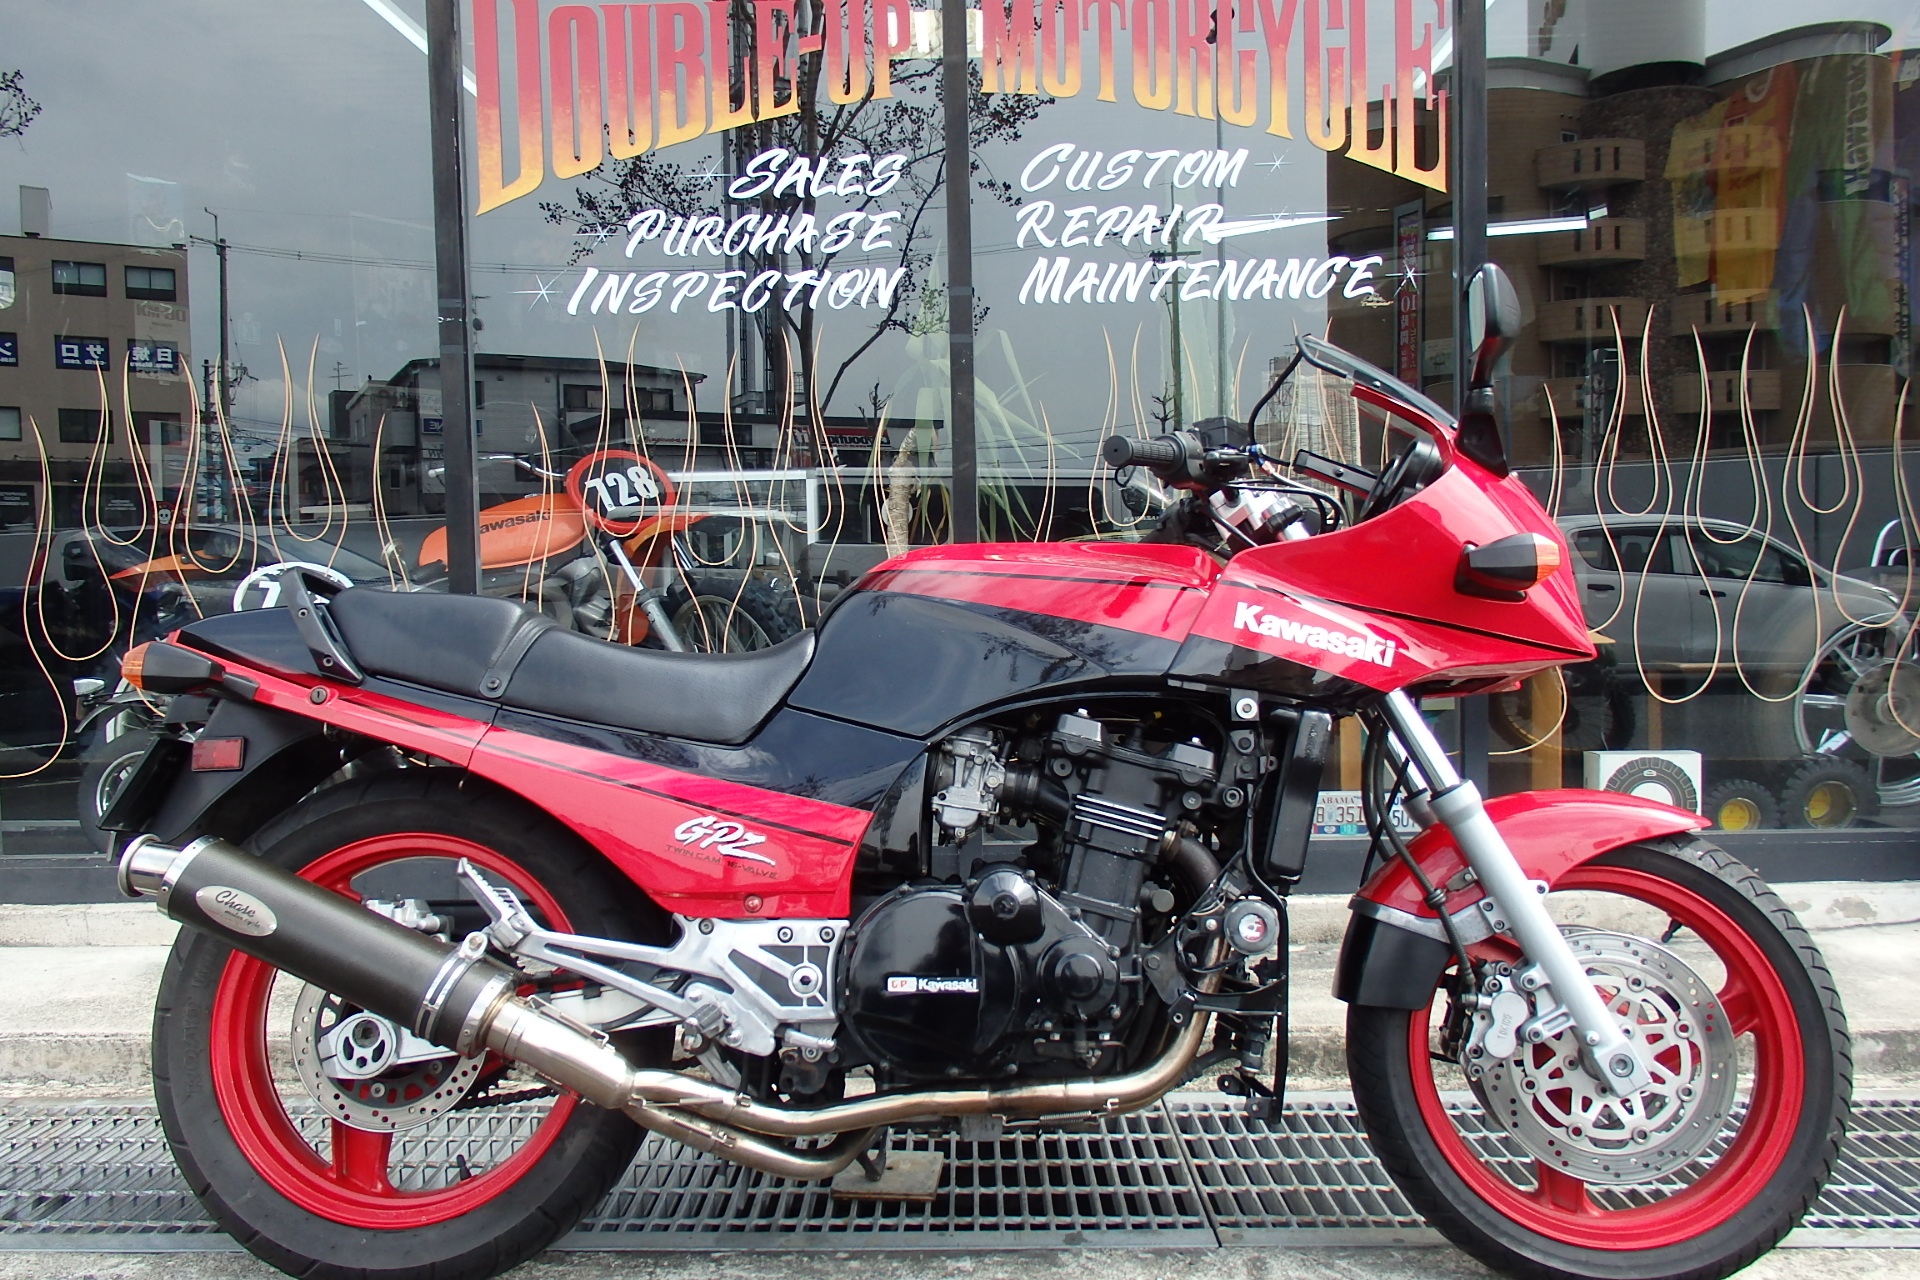 GPZ900R A8 17インチ カーボンマフラー